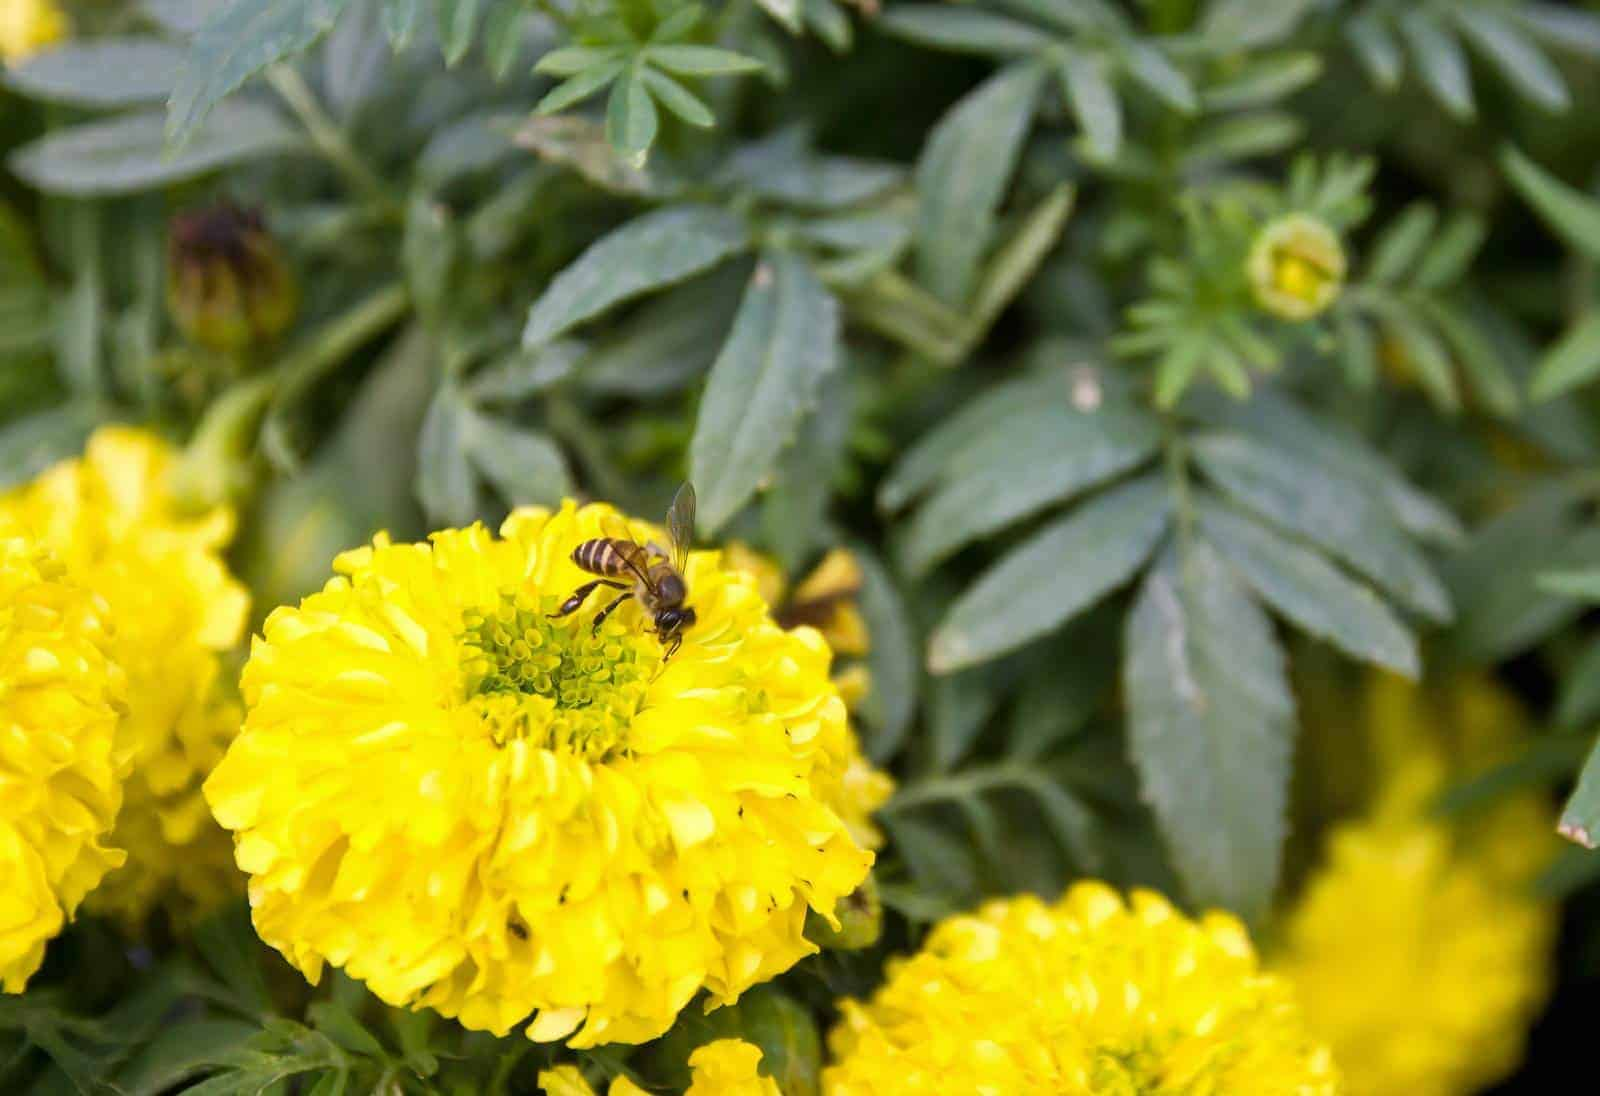 Are bees attracted to Marigolds?